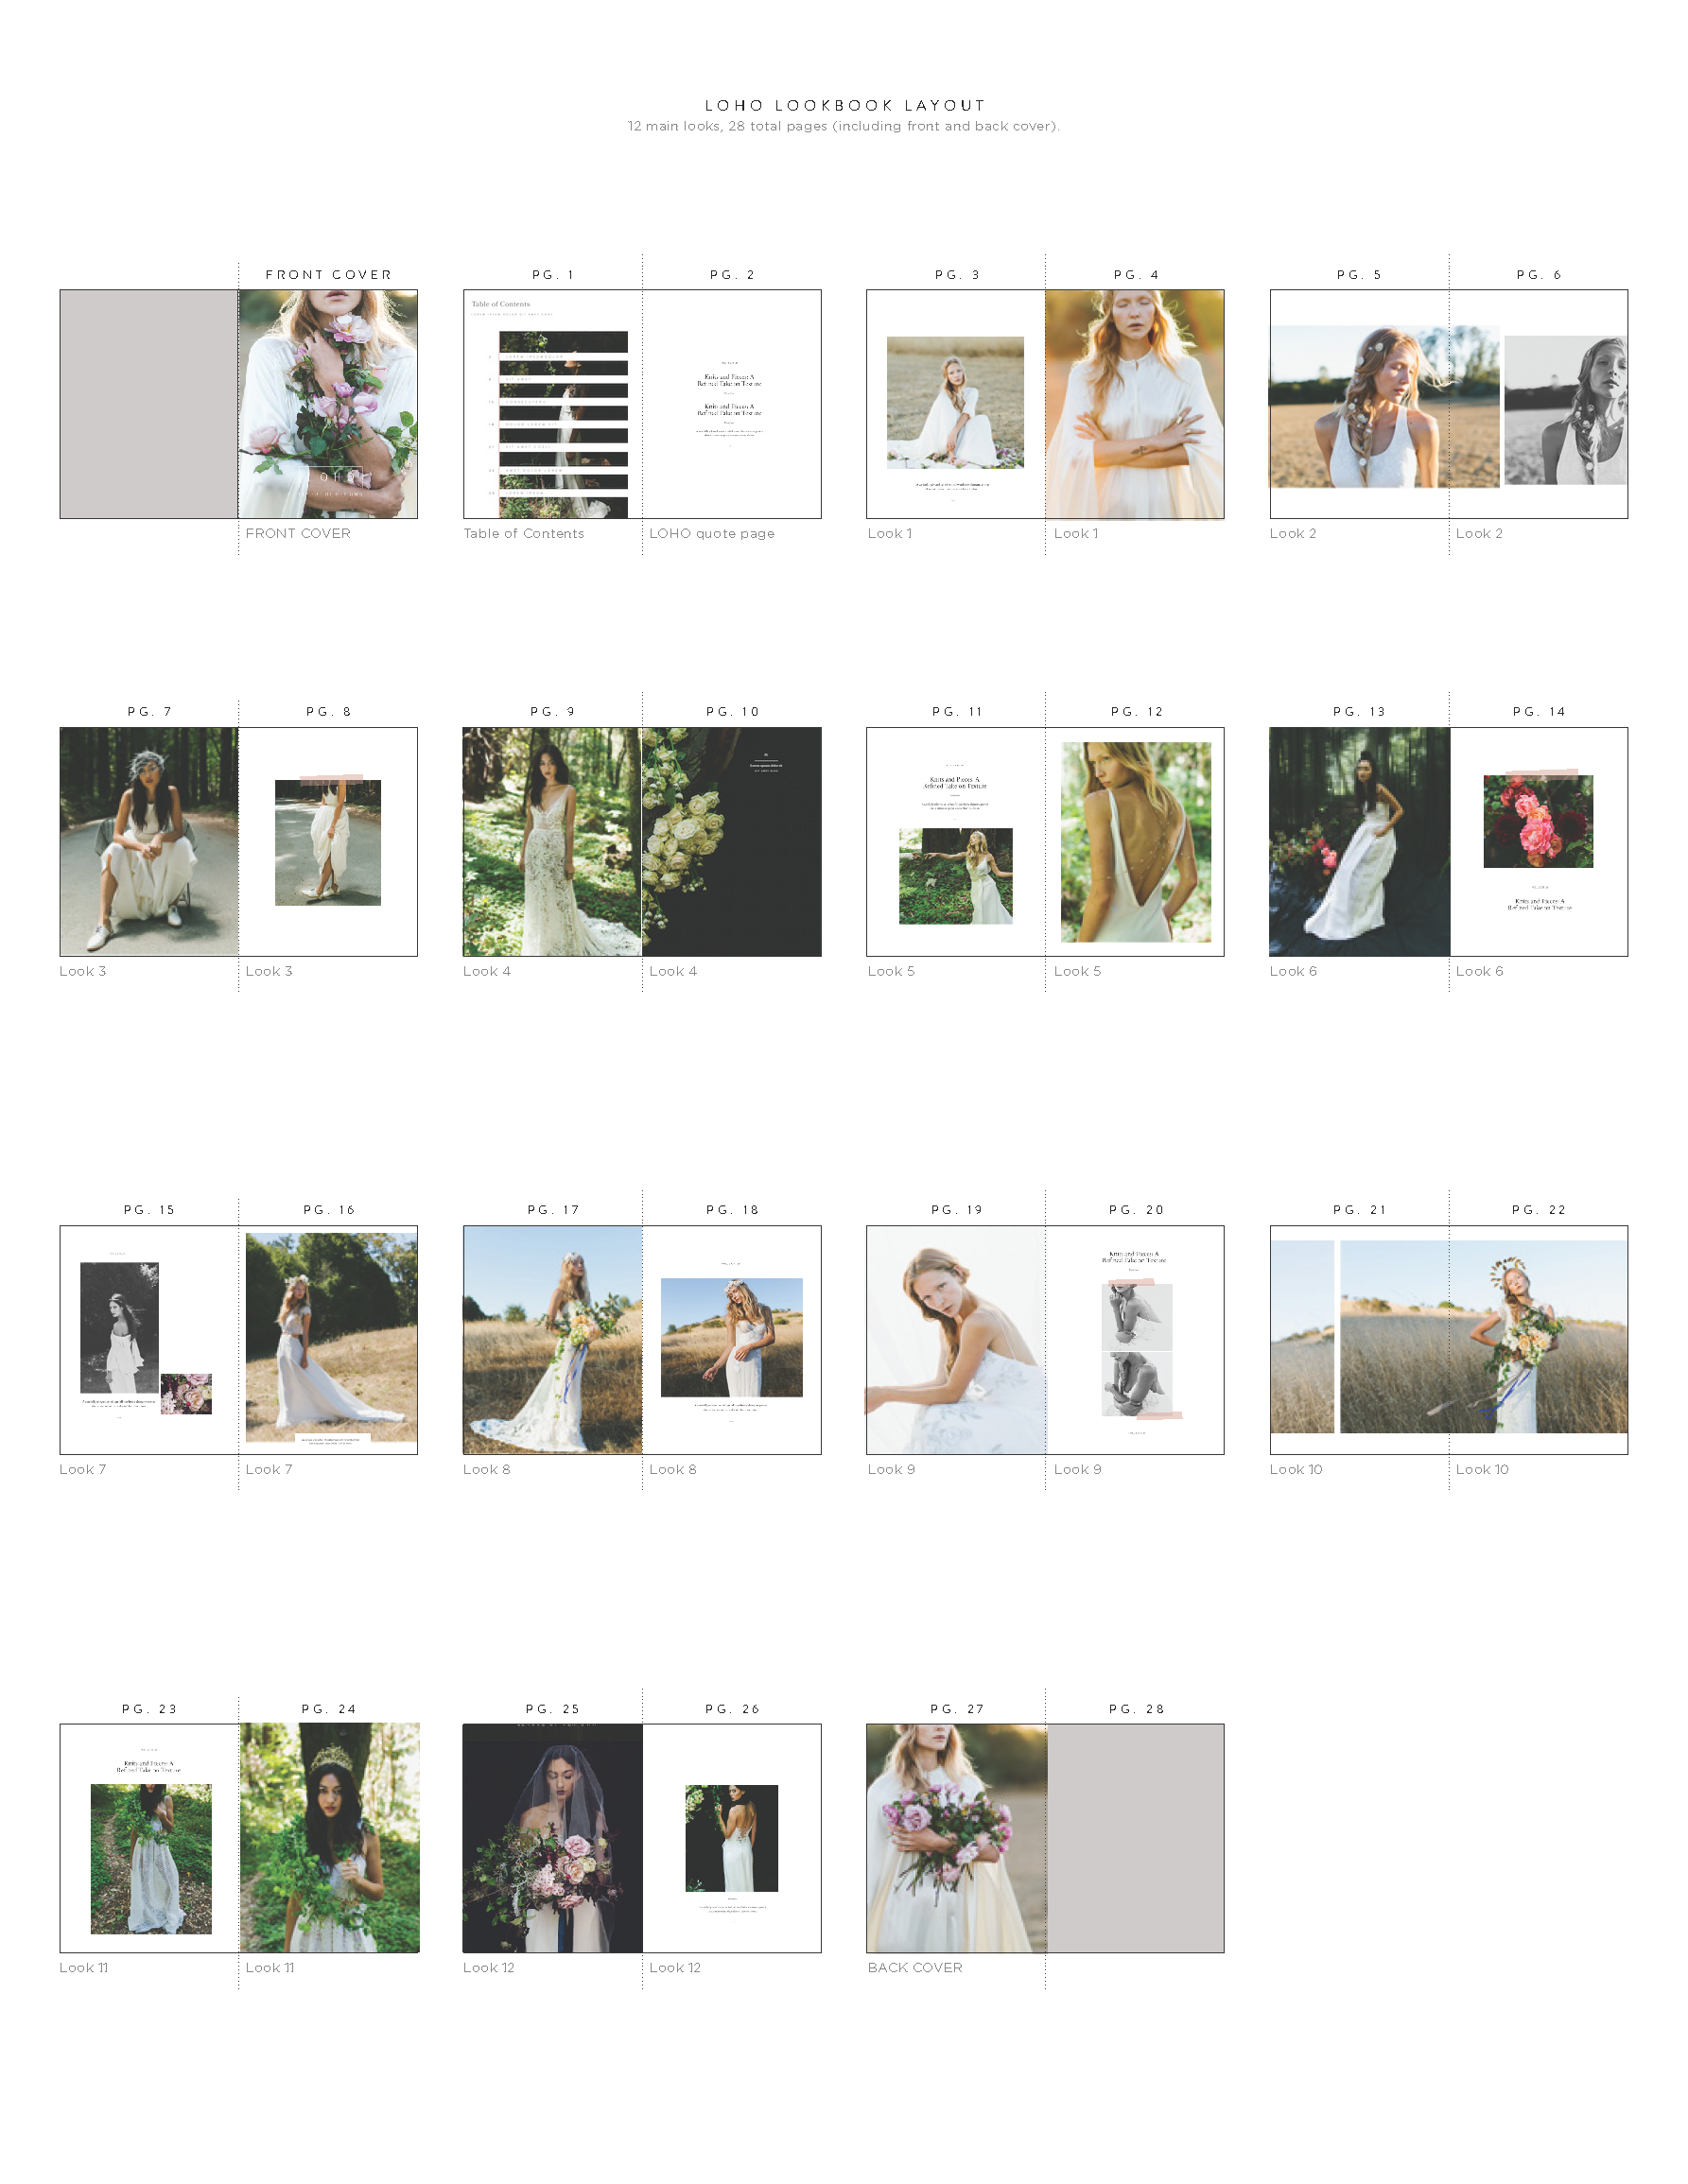 LOHO-LookbookLayout1.2_Page_1.png